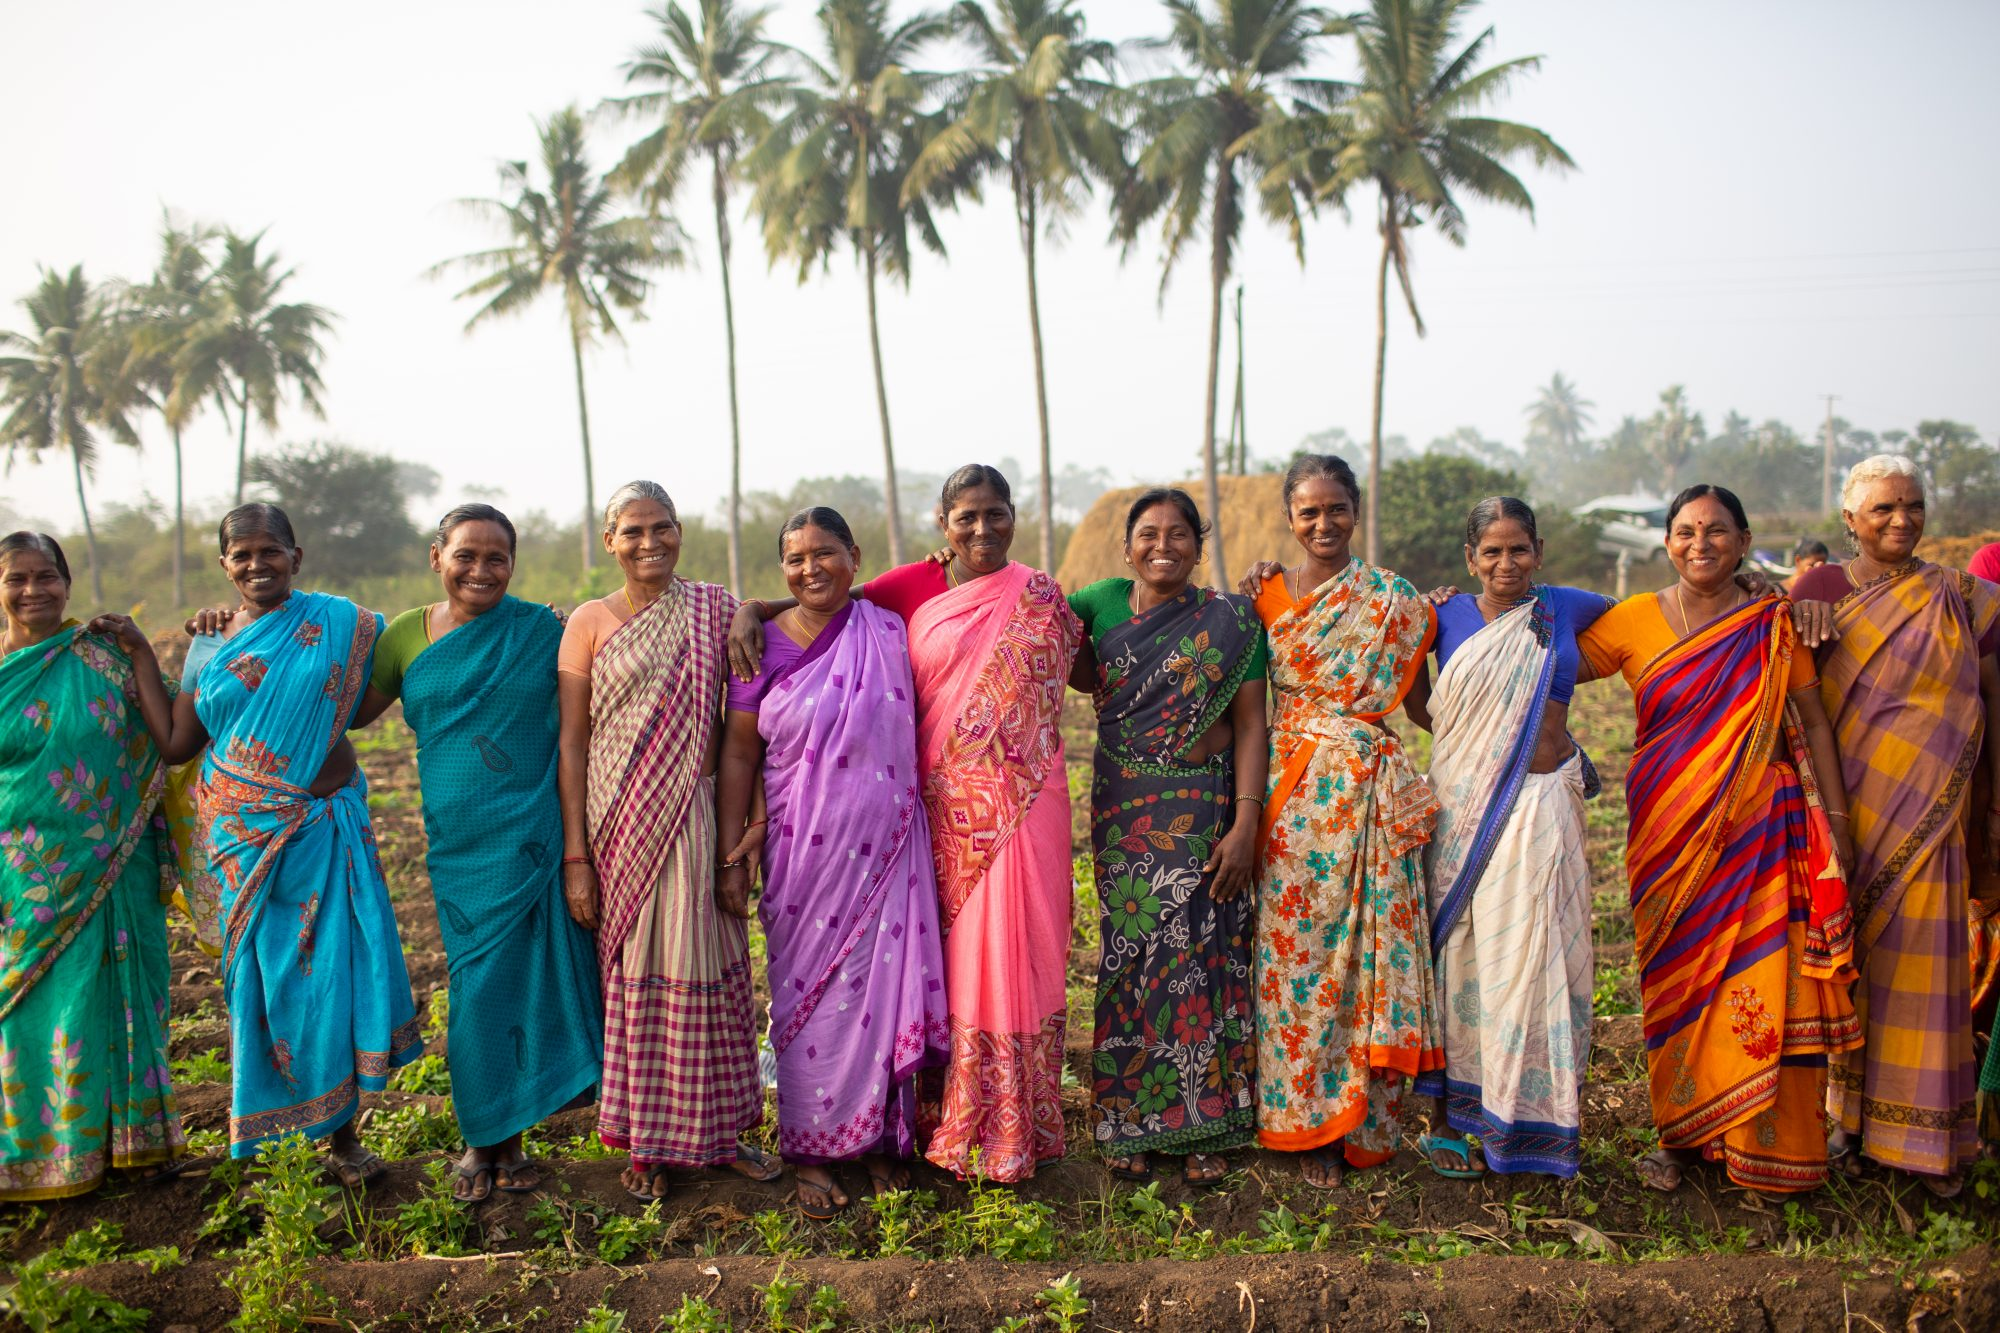 group of women spice farmers in colorful saris in a field in India